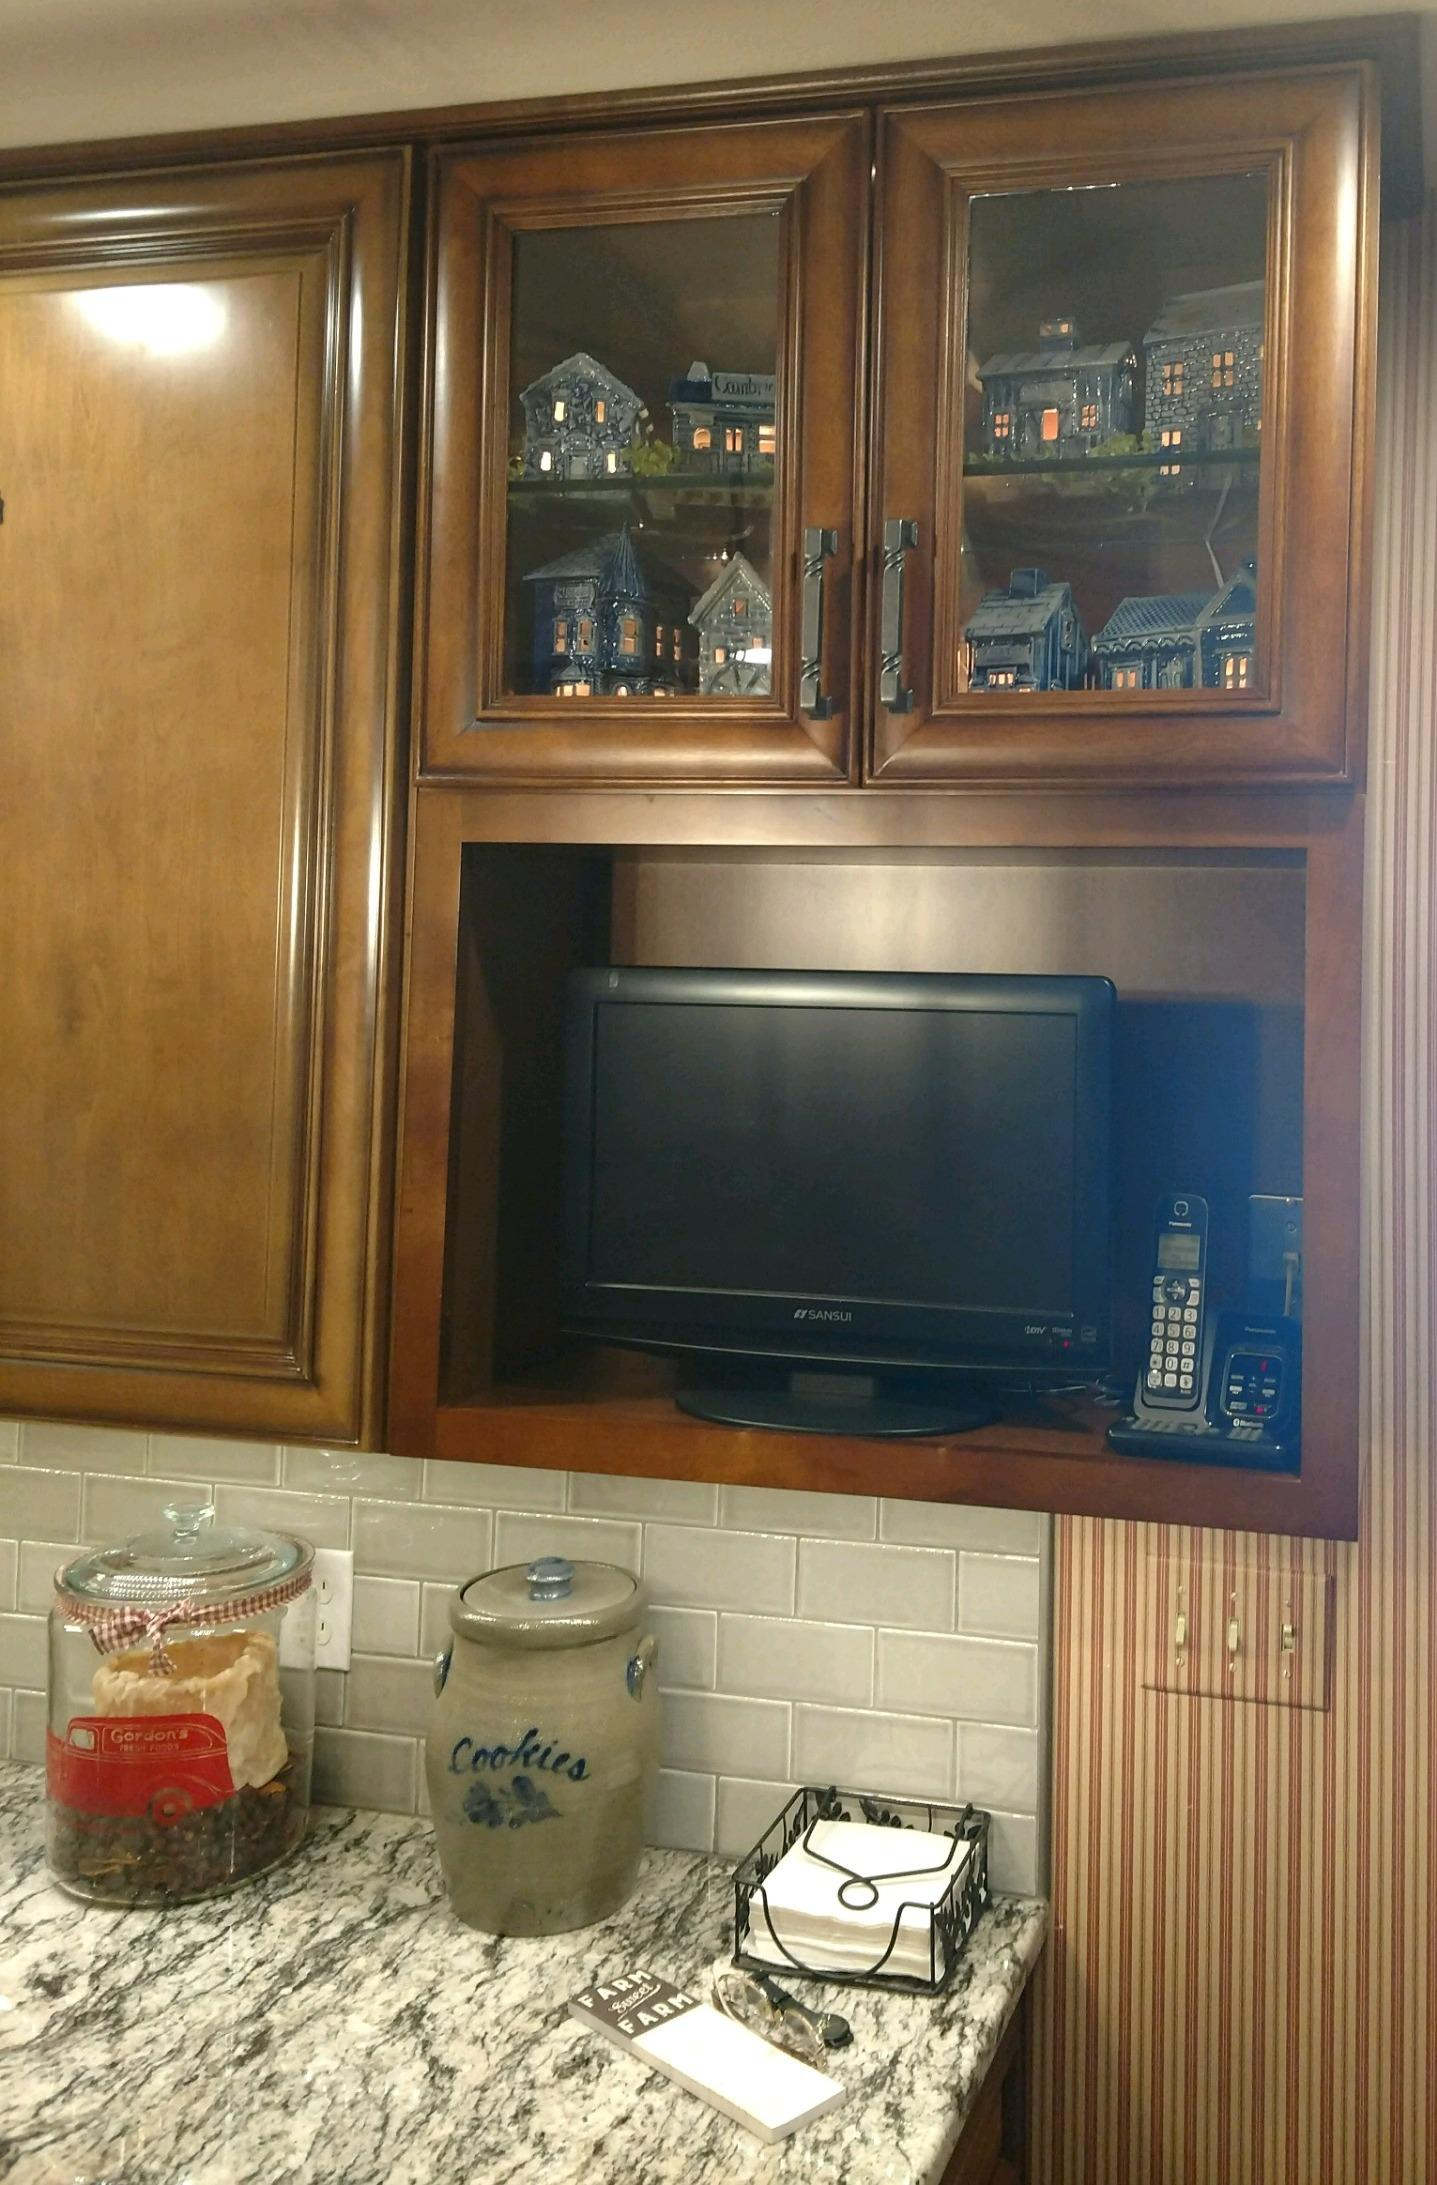 Accurate Upgrades Home Improvements LLC image 1